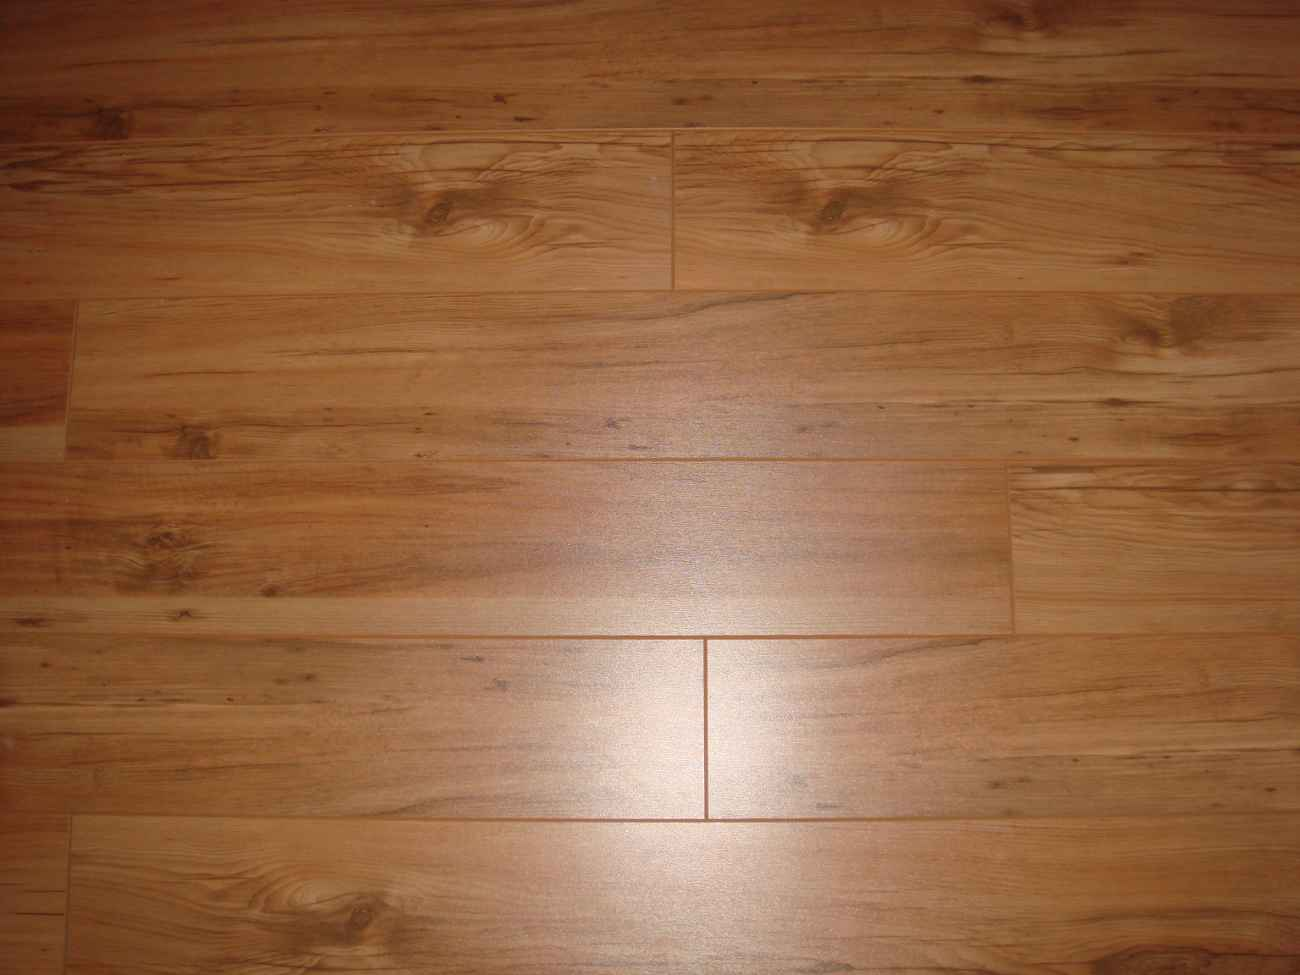 Wooden ceramic tile floors Wood tile flooring